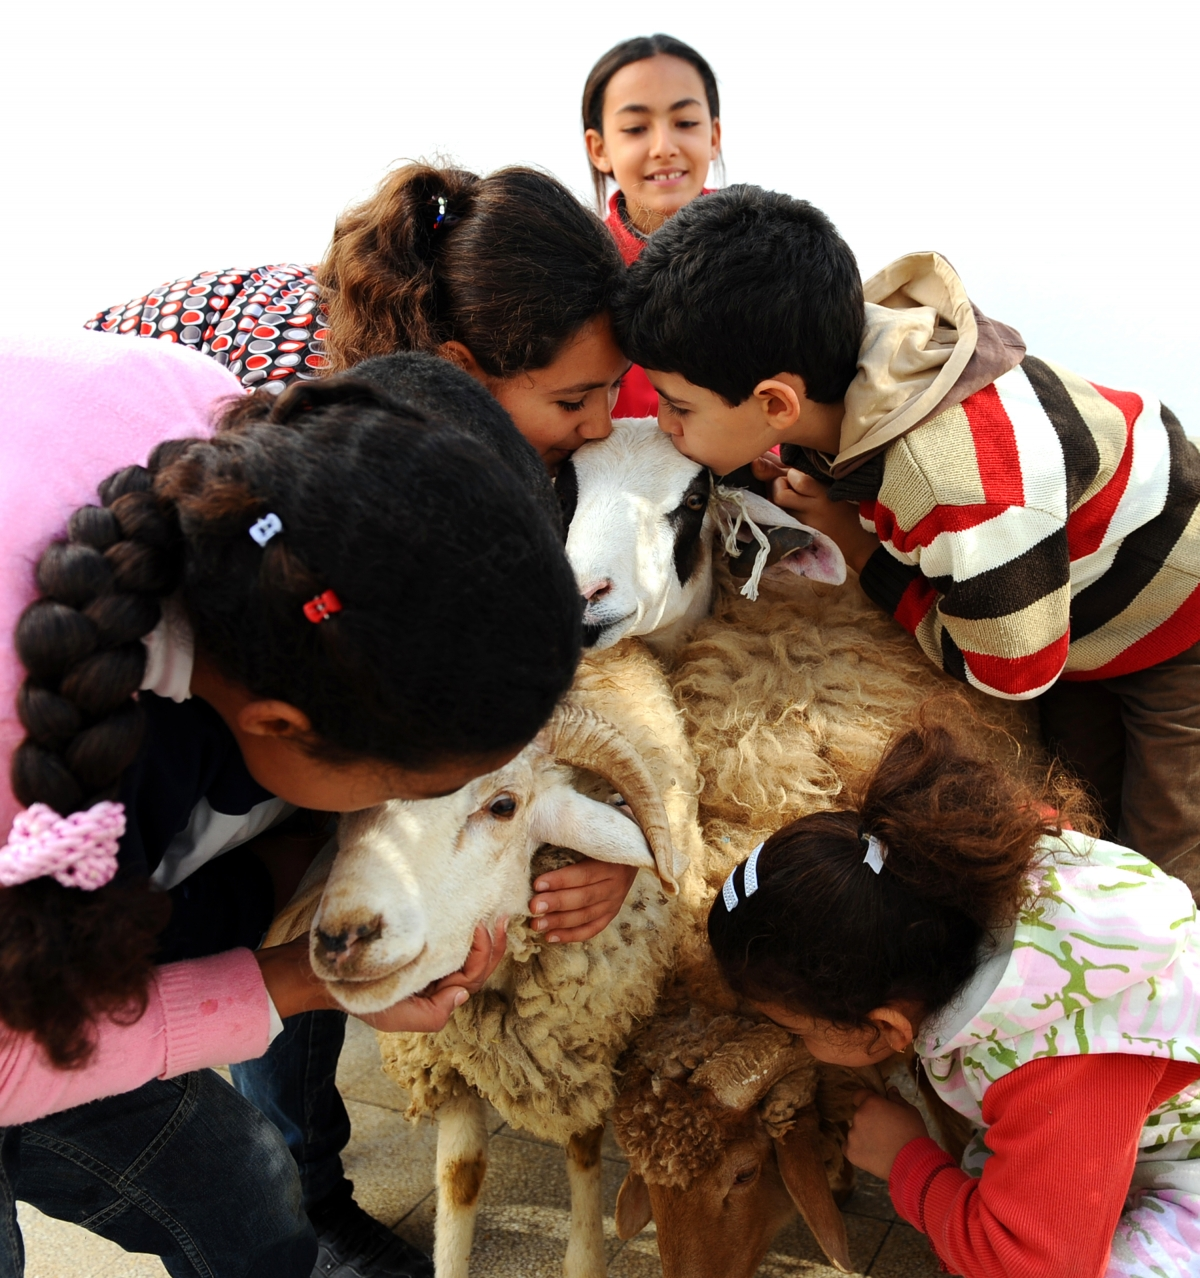 Tunisian children with sheep